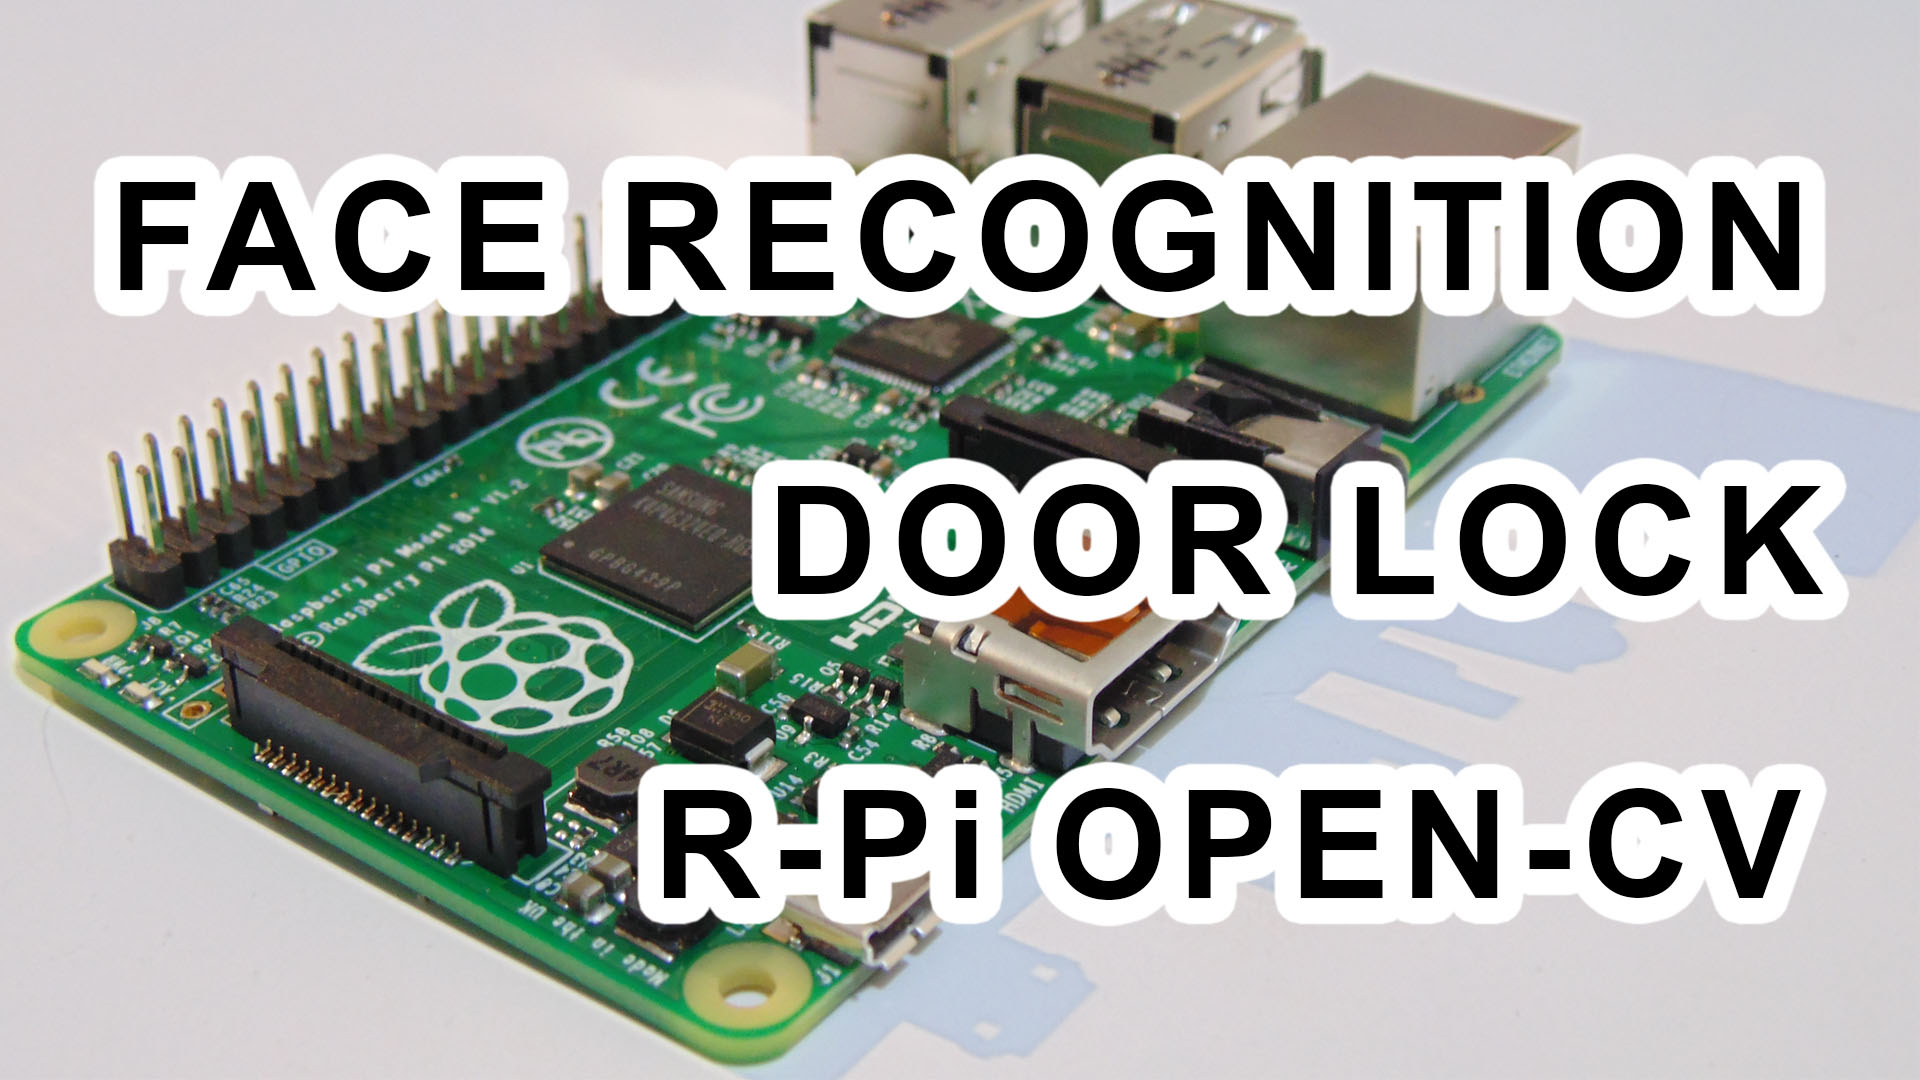 Face Recognition based Door Lock using Raspberry Pi and OpenCV